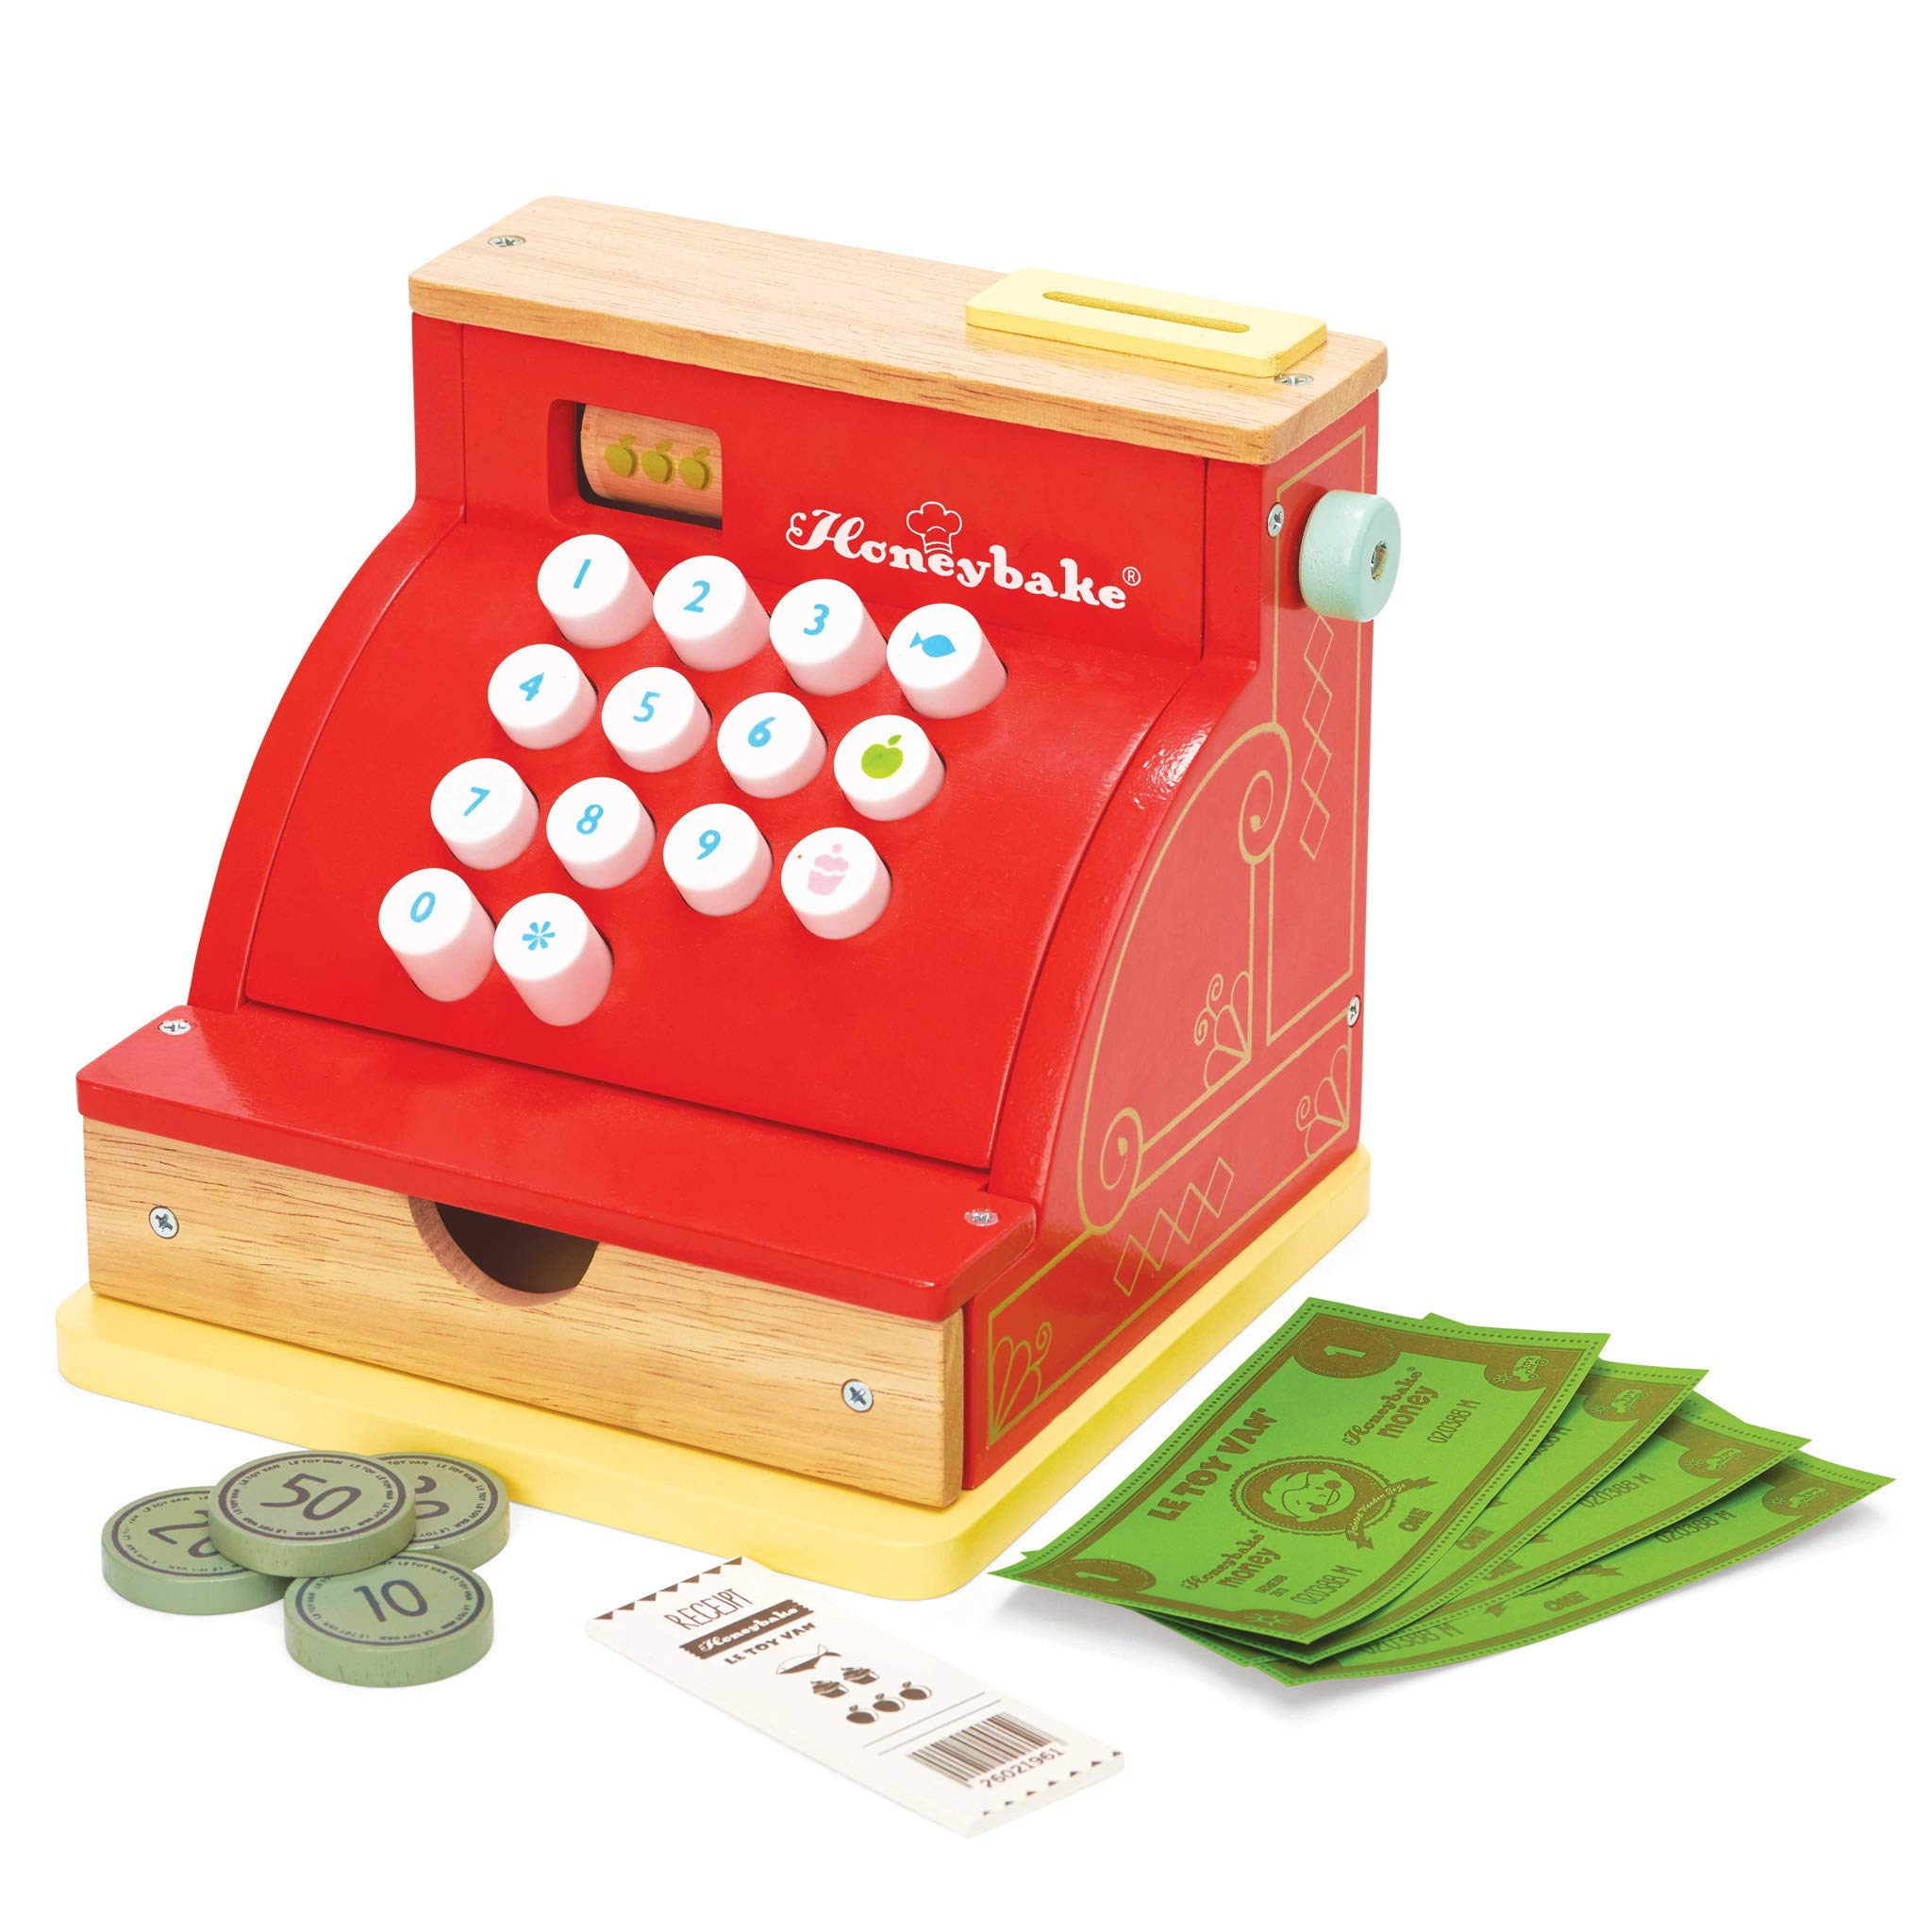 Letterland Le Toy Van Honeyback Collection Red Cash Register Premium Wooden Toys for Kids Ages 3 Years & Up by Letterland (Image #3)